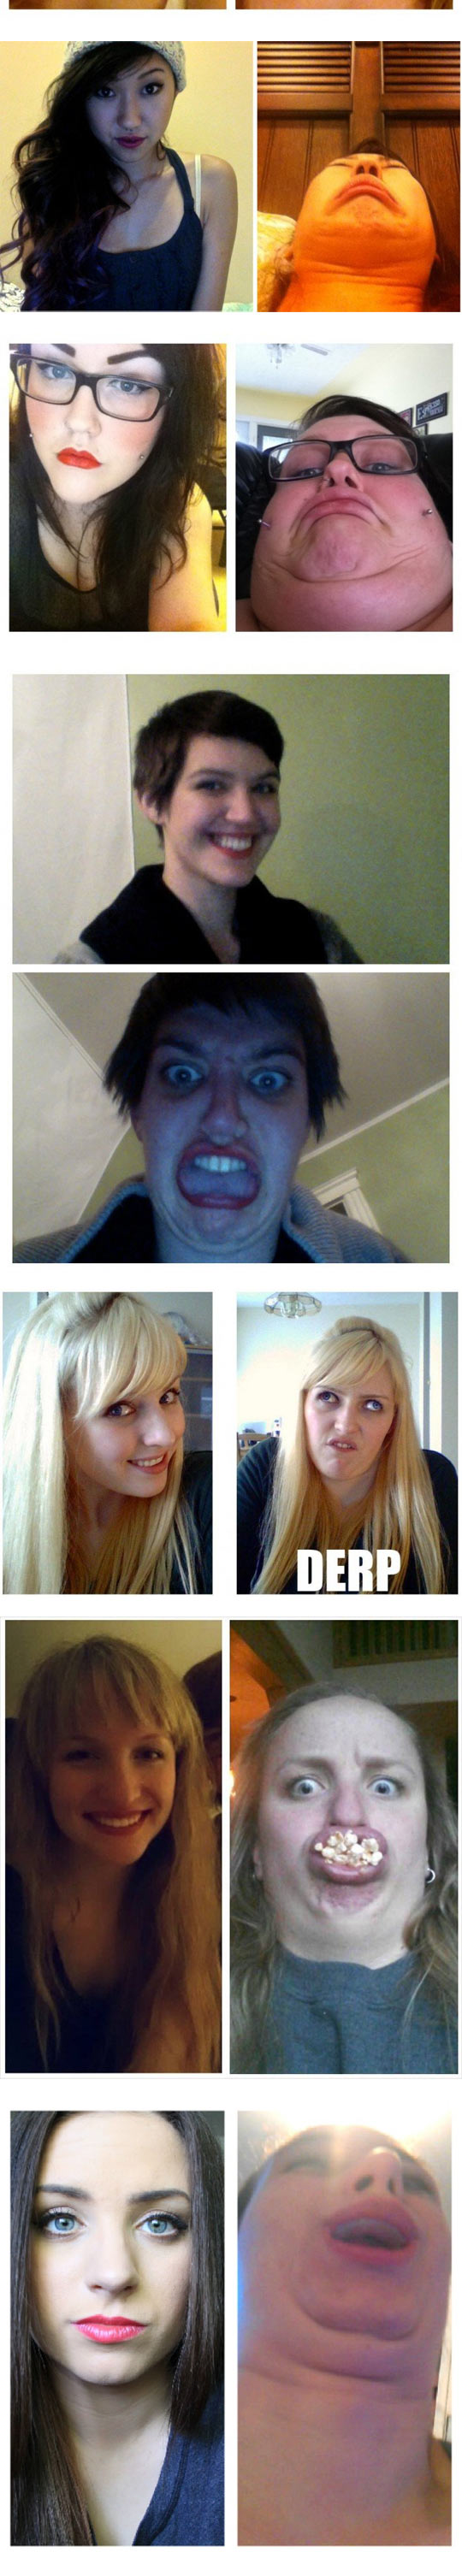 funny-beautiful-women-ugly-faces-mouth